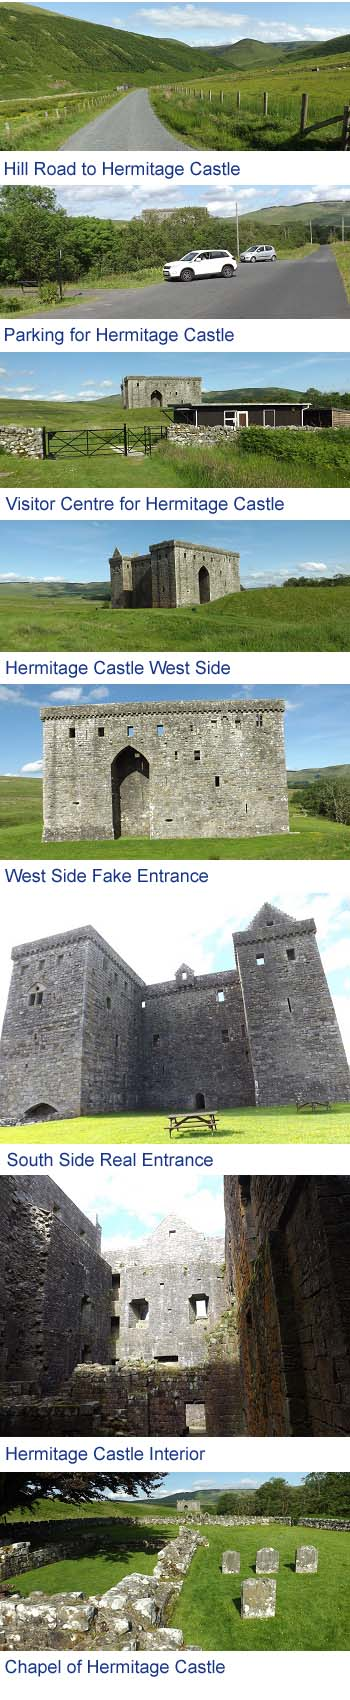 Hermitage Castle Photos